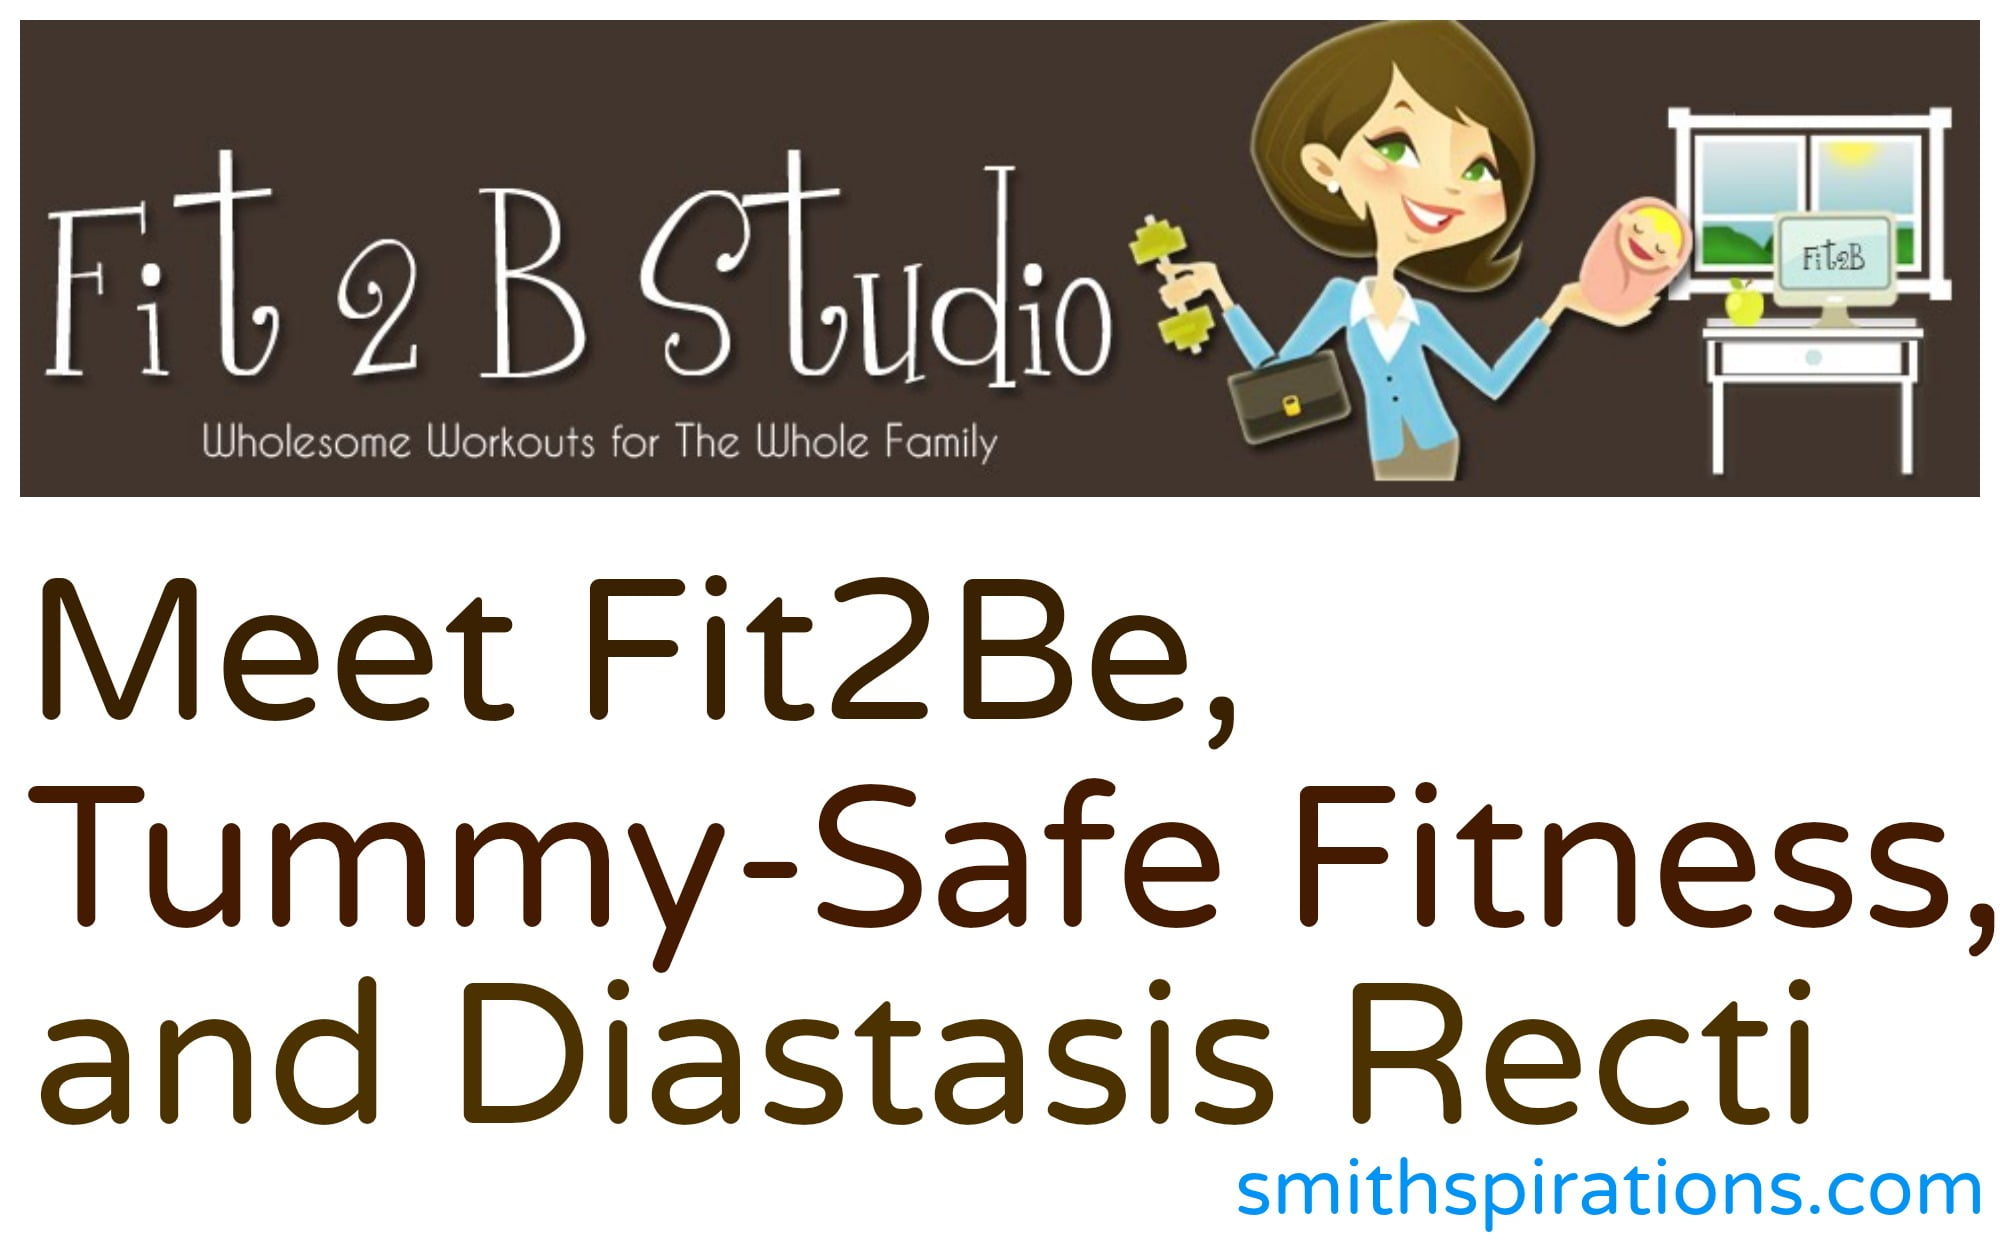 Meet fit2be tummy safe fitness and diastasis recti part 1 a meet fit2be tummy safe fitness and diastasis recti part 1 a better way to thrive fandeluxe